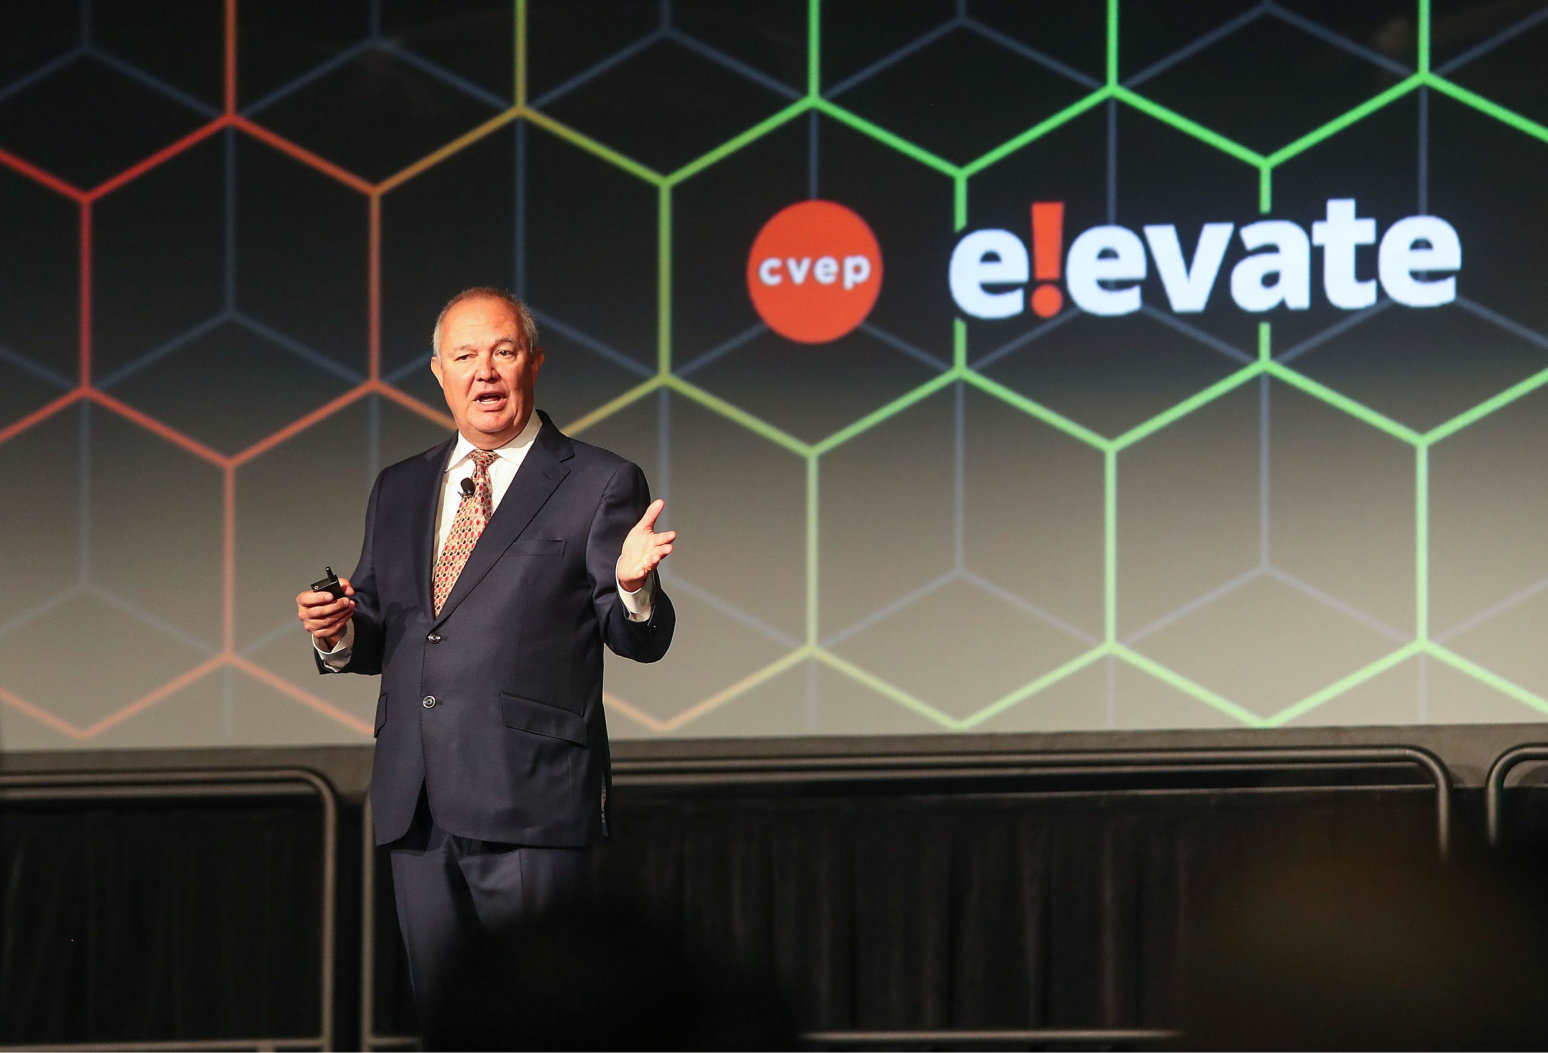 CVEP Announces Details for its Annual Greater Palm Springs Annual Economic Summit